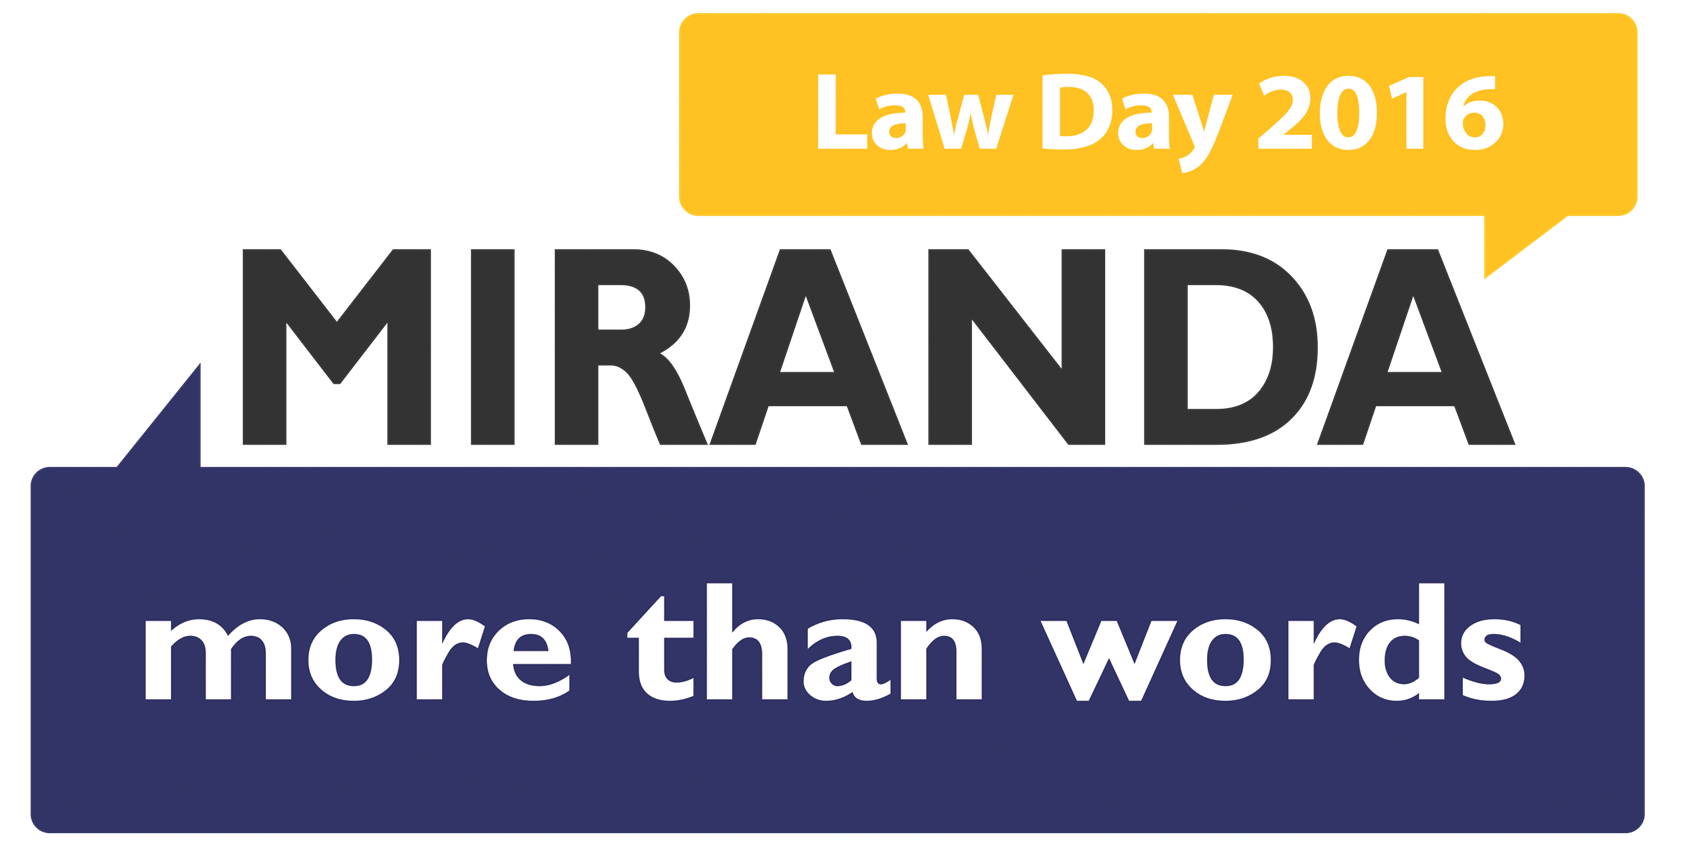 Link to ABA's Law Day Website - lawday.org